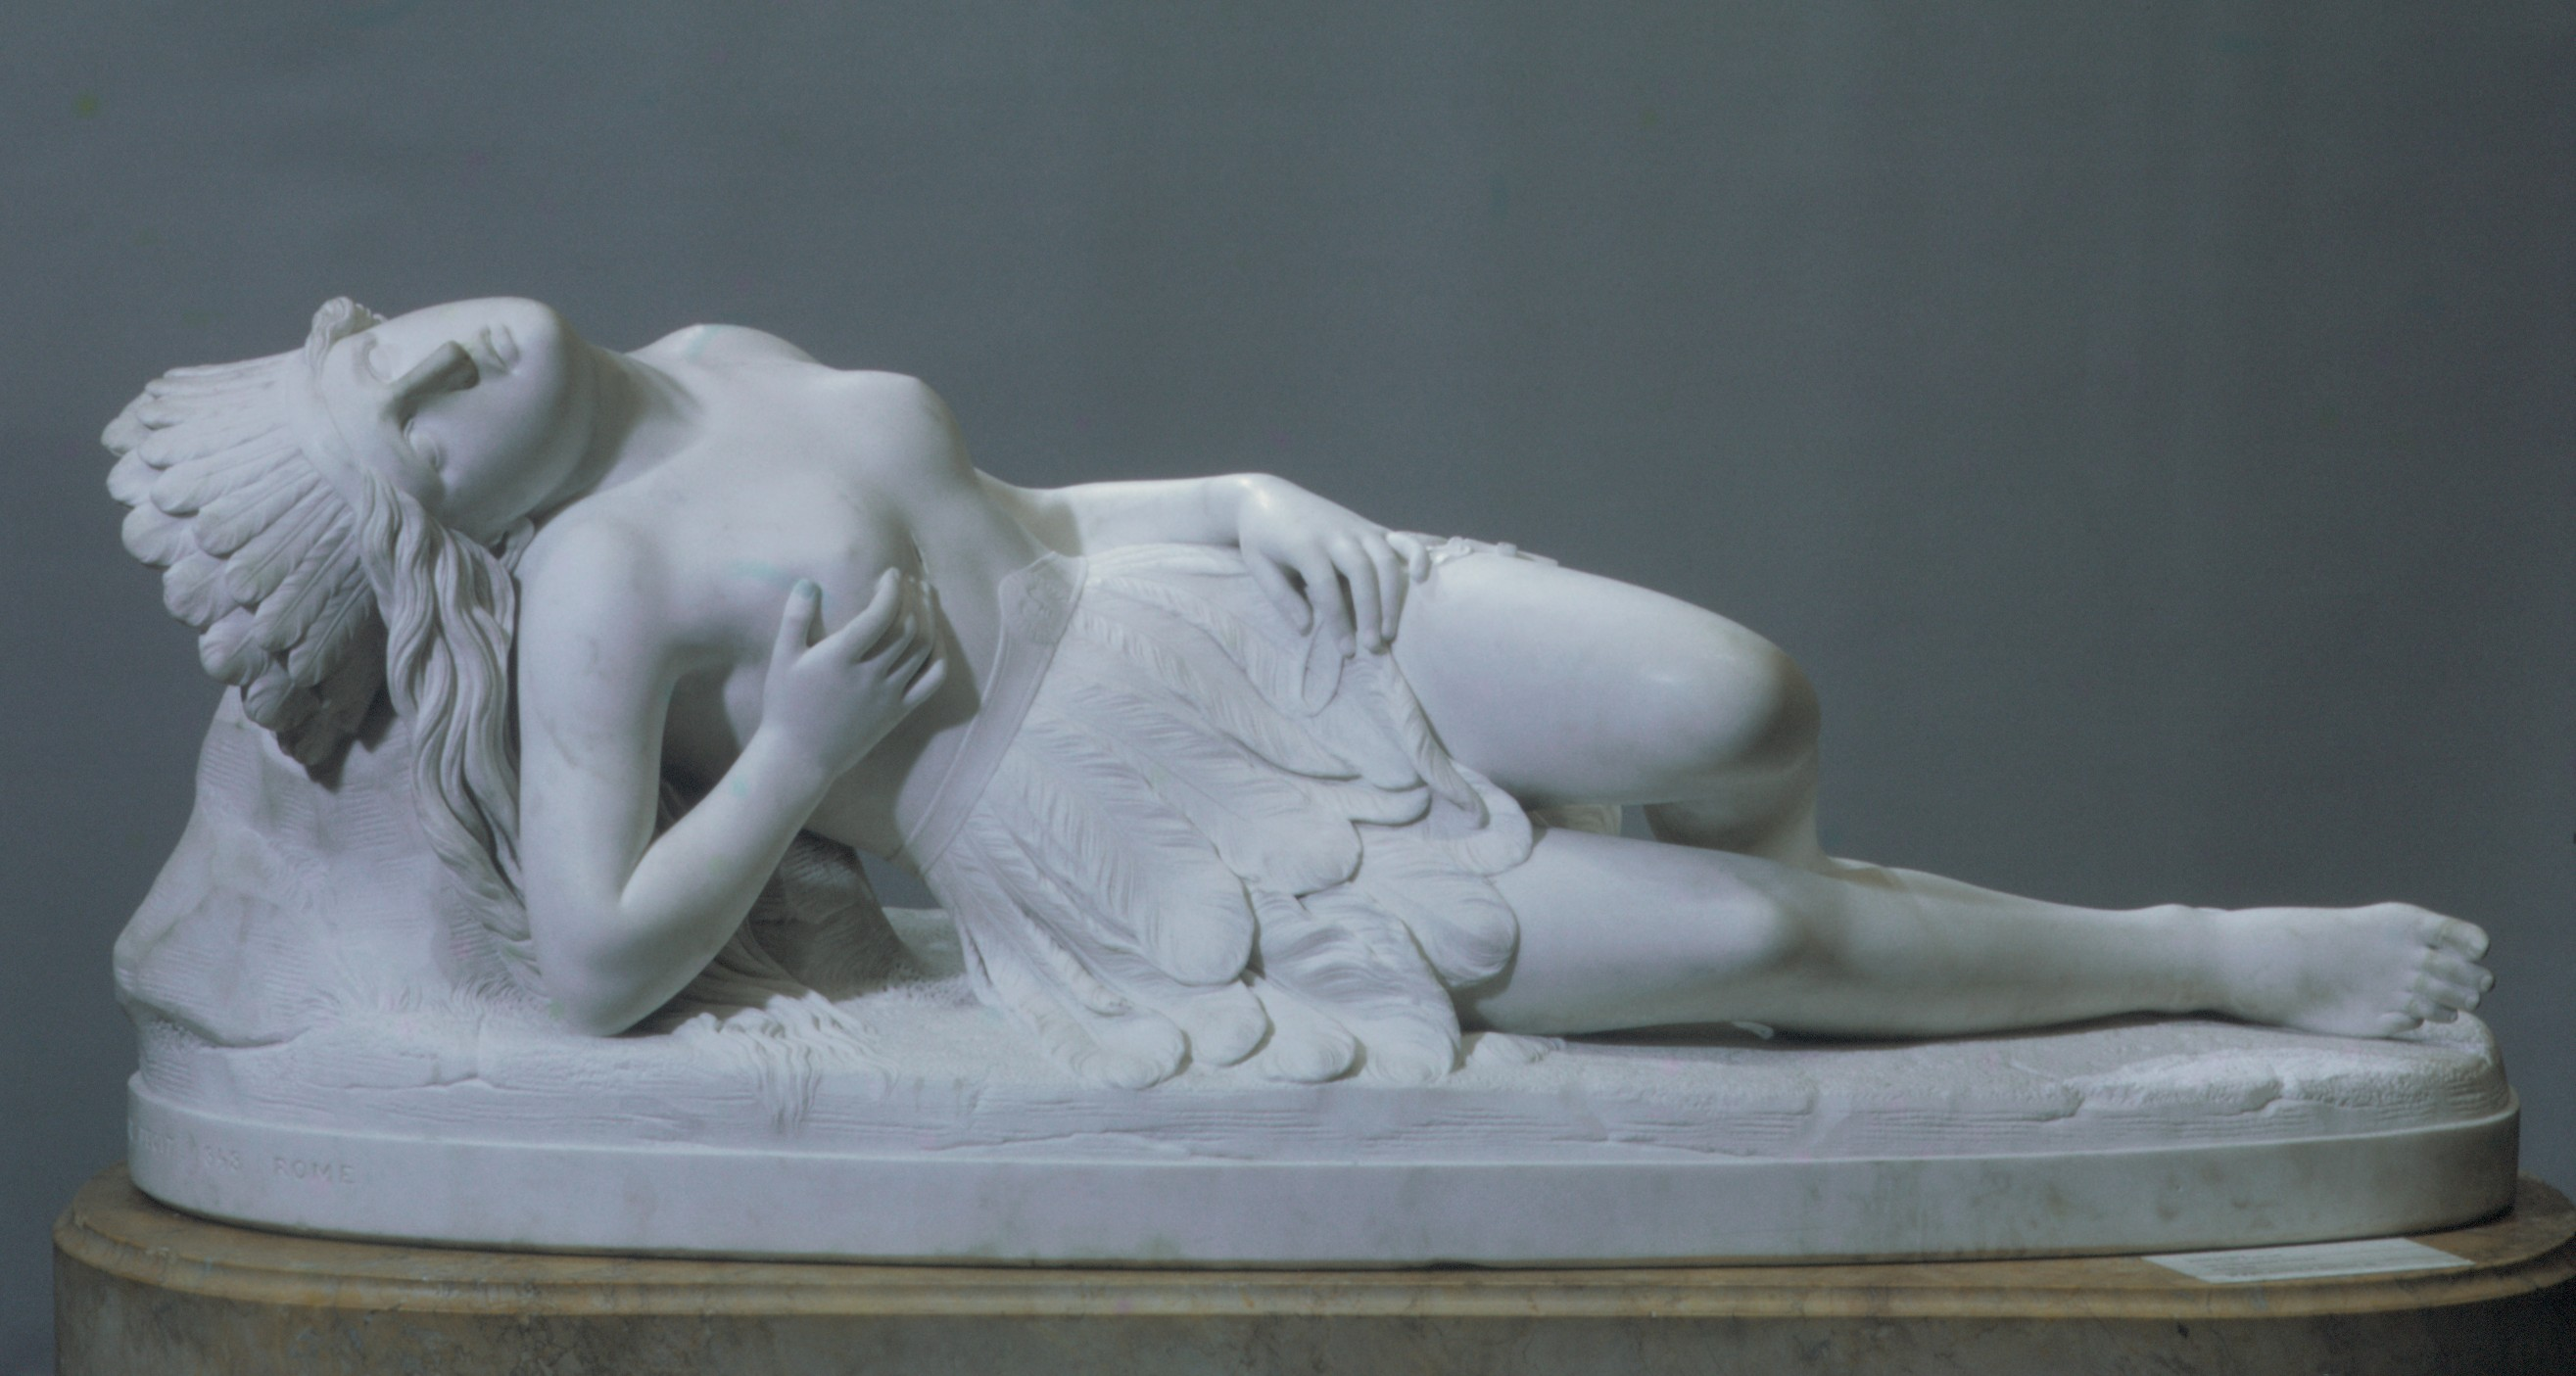 Mexican Girl Dying 1846; carved 1848, by Thomas Crawford, from the Met Museum's collection. Image: public domain, courtesy of the Met Museum